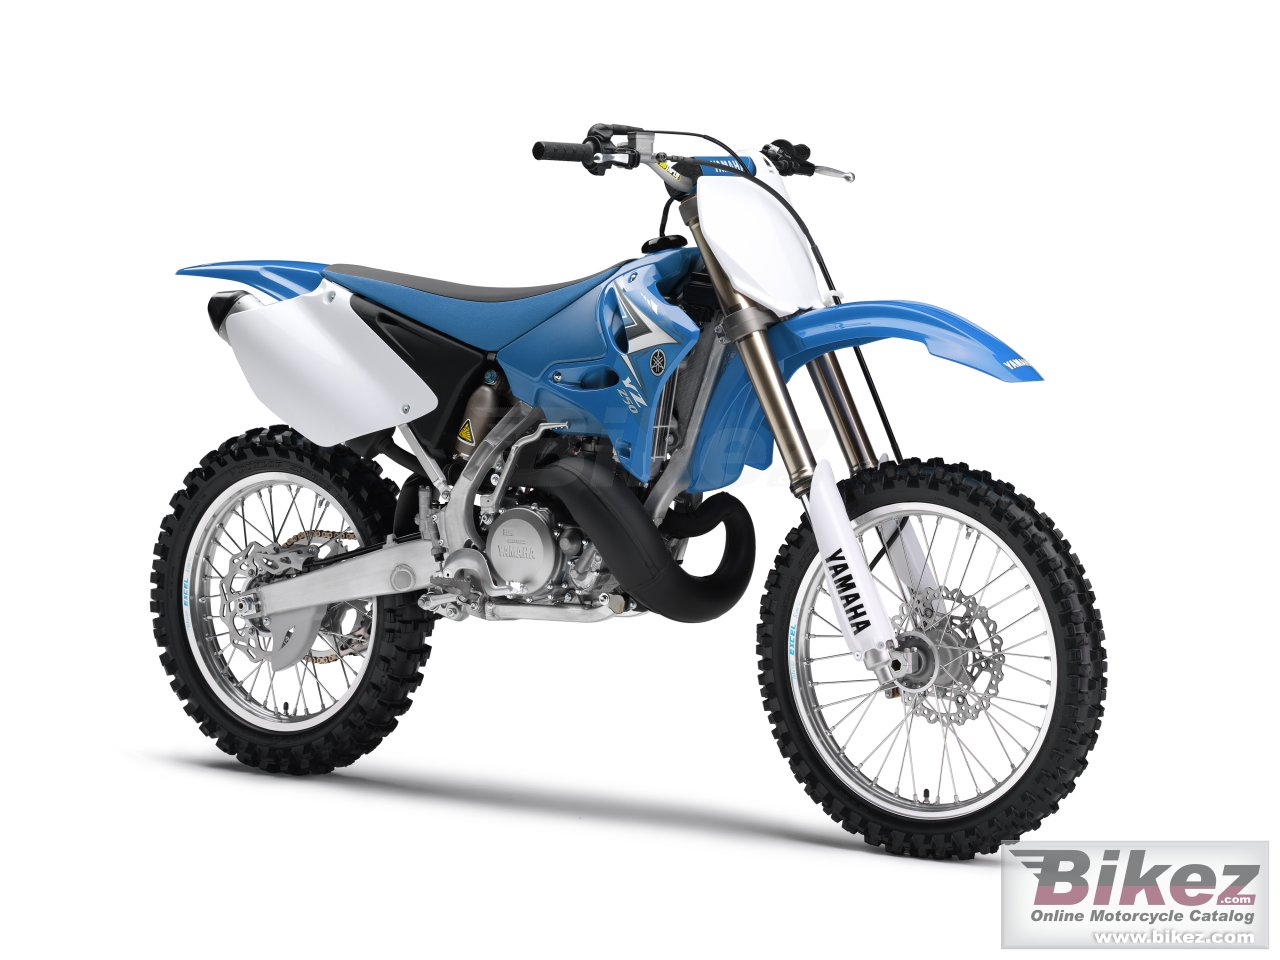 Big Yamaha yz250 picture and wallpaper from Bikez.com